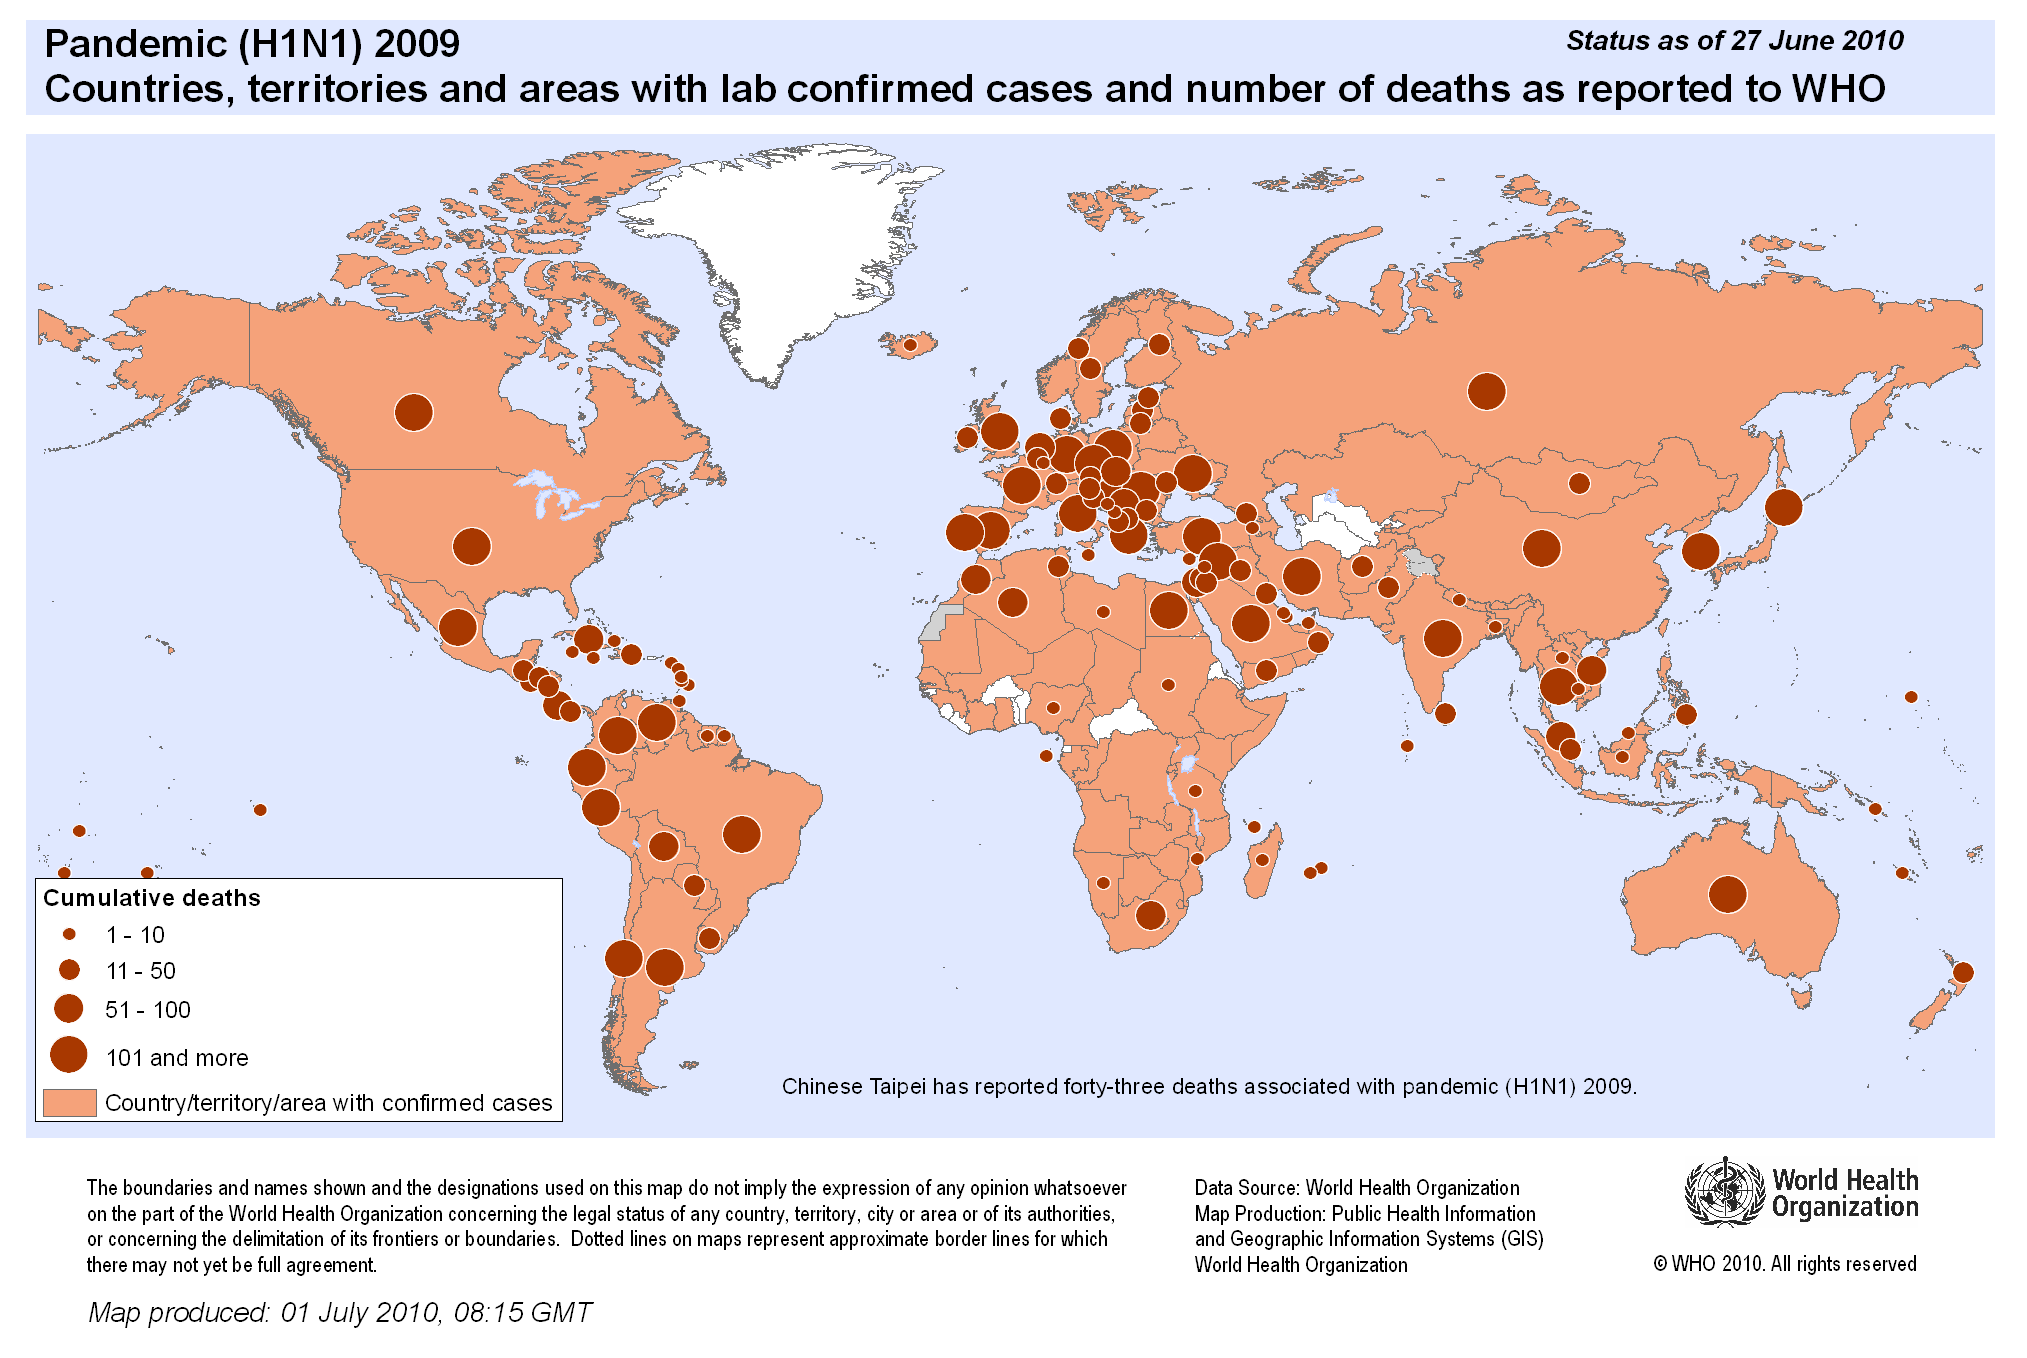 world pandemic h1n1 2009 countries territories and